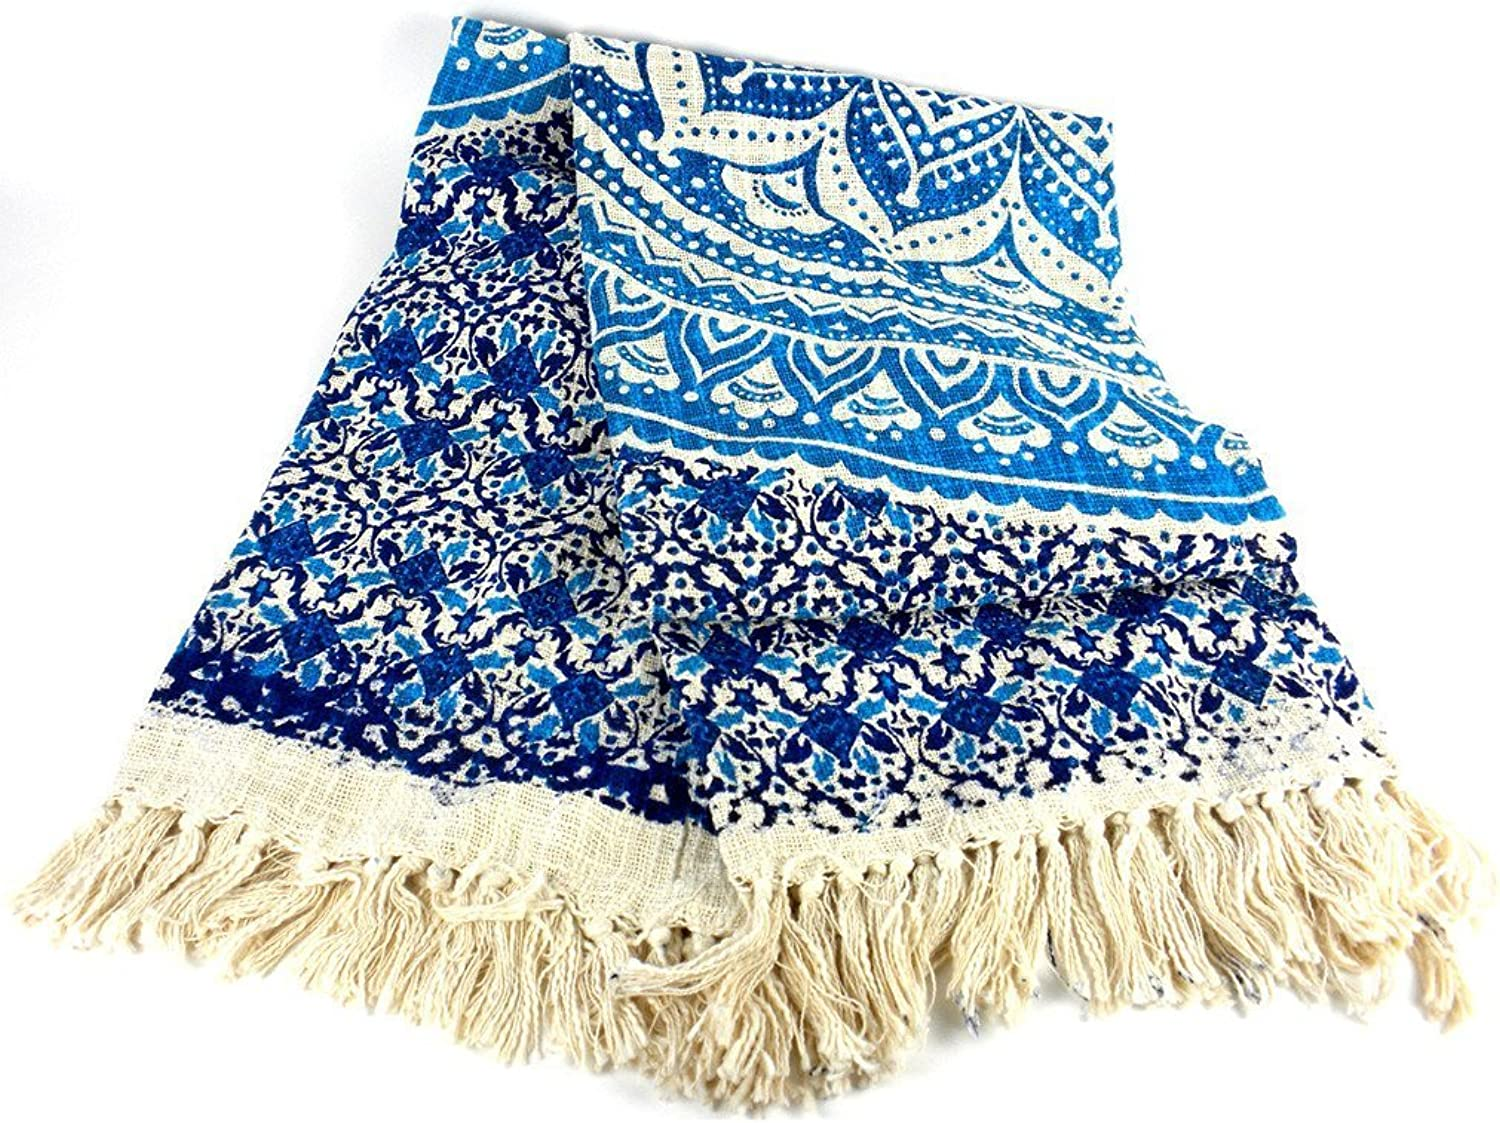 Mandala Throw bluee 50 by 70 inches  Mira